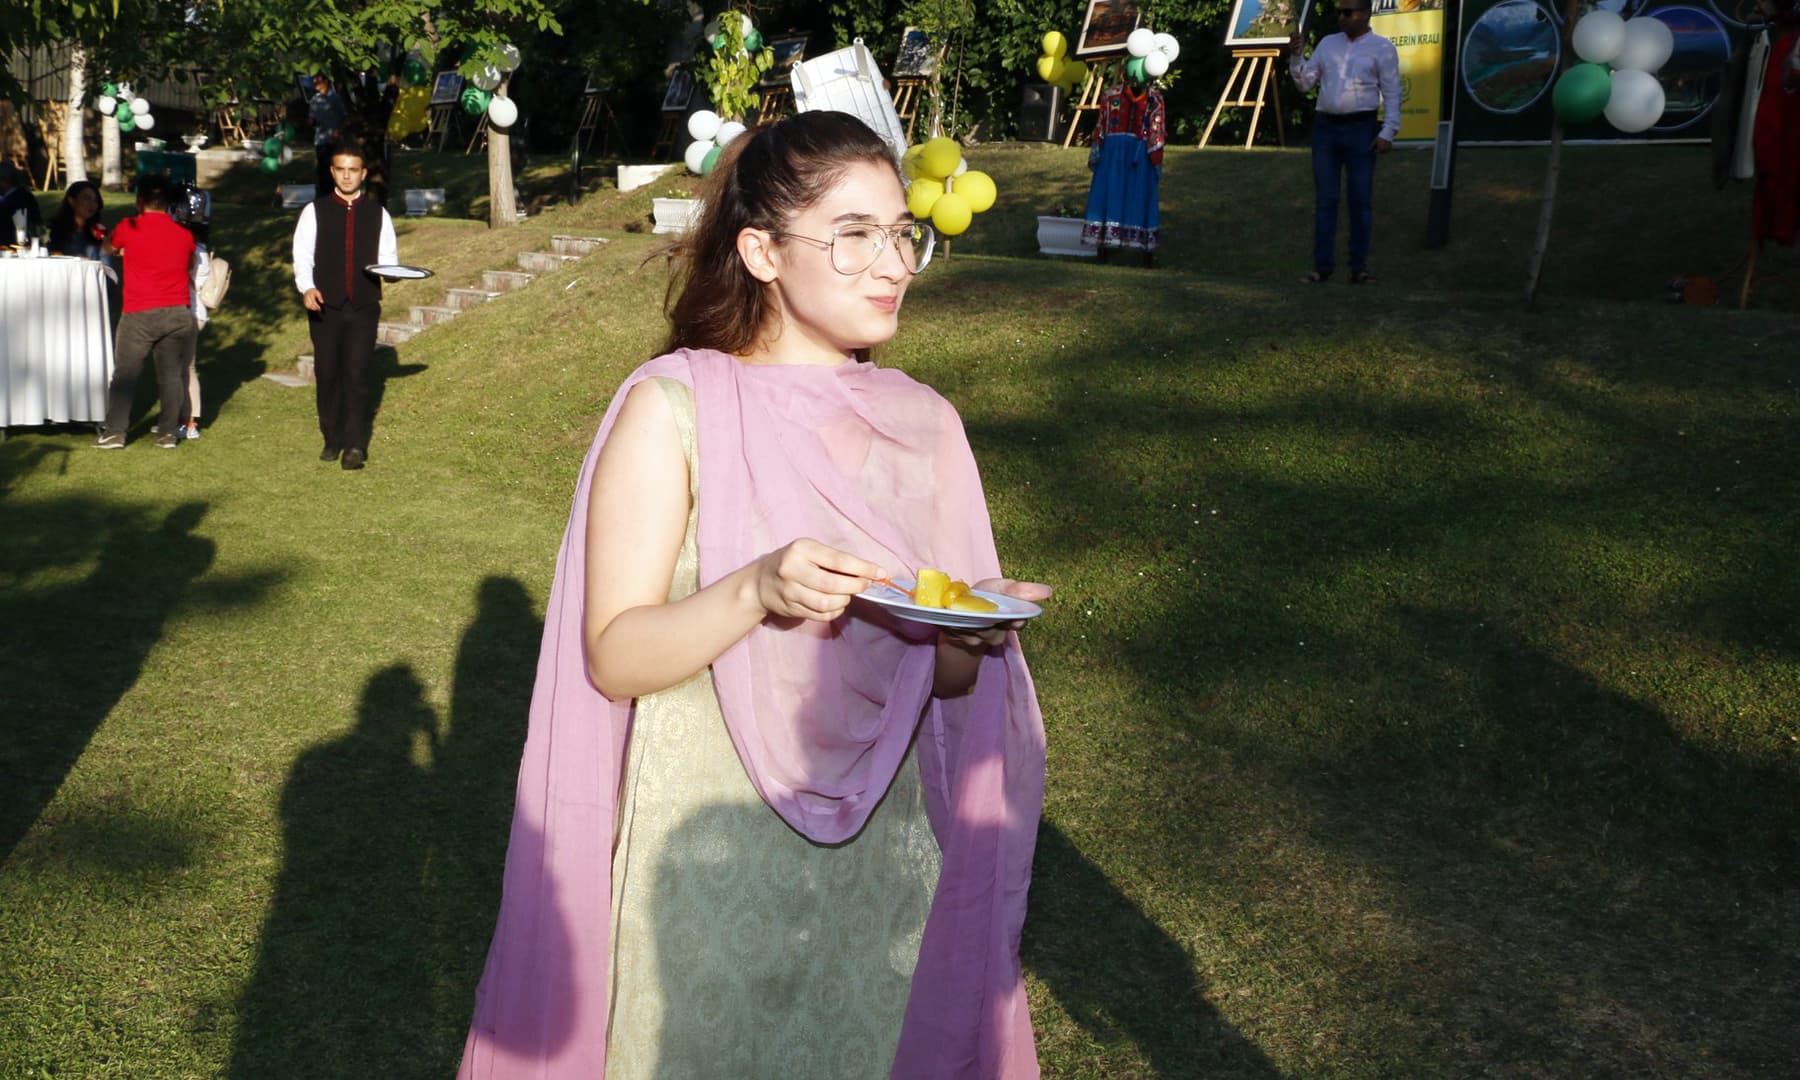 A girl pictured enjoying a taste of the mangoes.